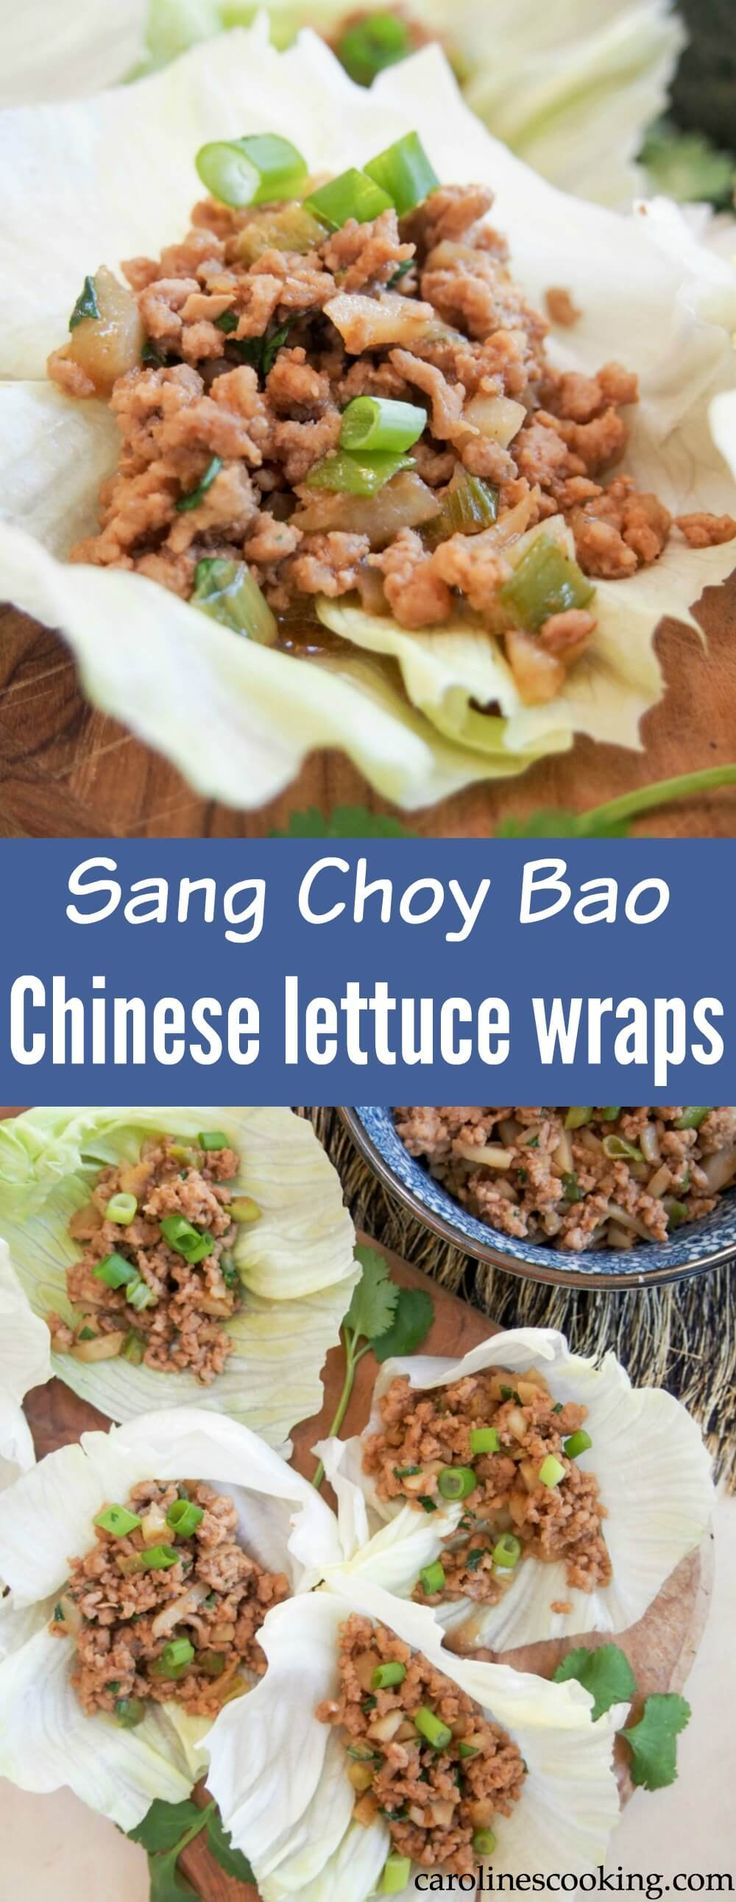 Whether you're looking for food to celebrate Chinese New Year, or just an easy low carb appetizer, these Chinese lettuce wraps are a delicious choice. (Plus the filling is great for meal prep!) #Chinesefood #appetizer #lowcarb #glutenfree #mealprep